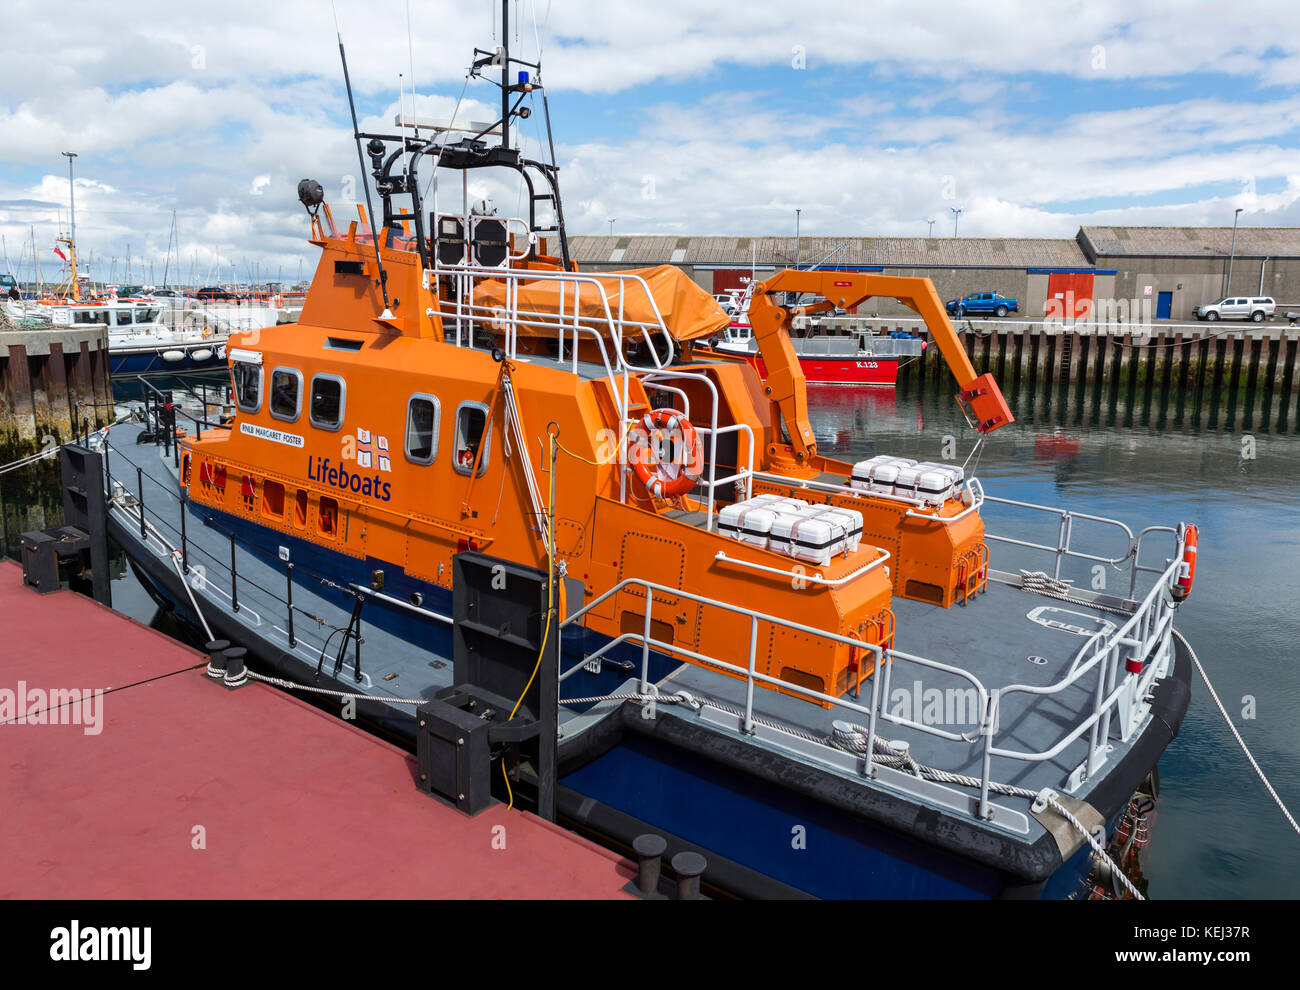 RNLI Severn class lifeboat 'RNLB Margaret Foster' in the harbour in Kirkwall, Mainland, Orkney, Scotland, - Stock Image